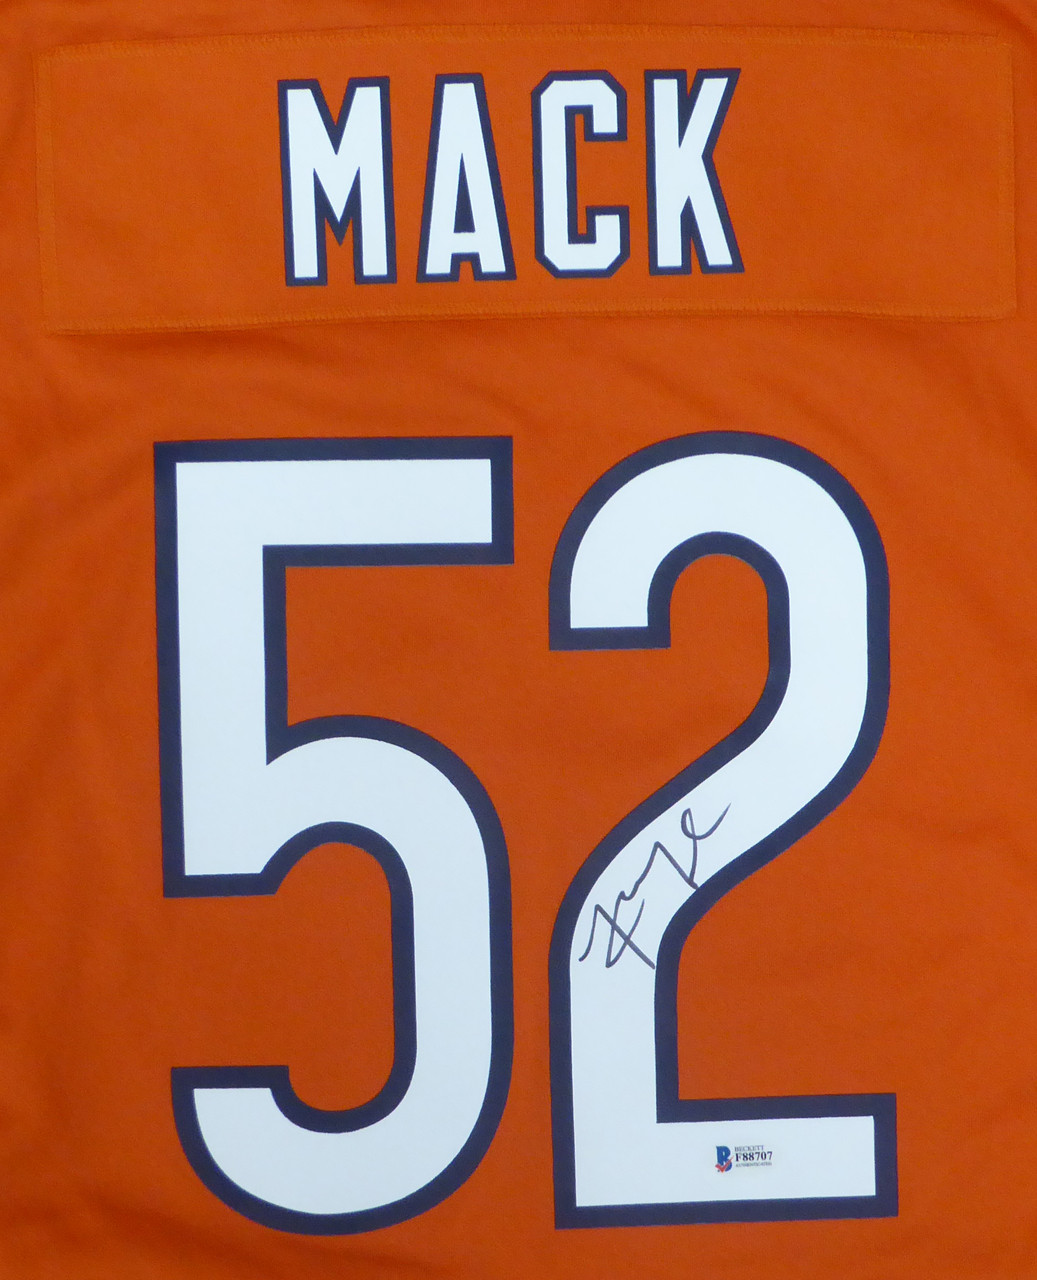 low priced f4e5e 693c4 Chicago Bears Khalil Mack Autographed Orange Nike Jersey Size L Beckett BAS  Stock #148306